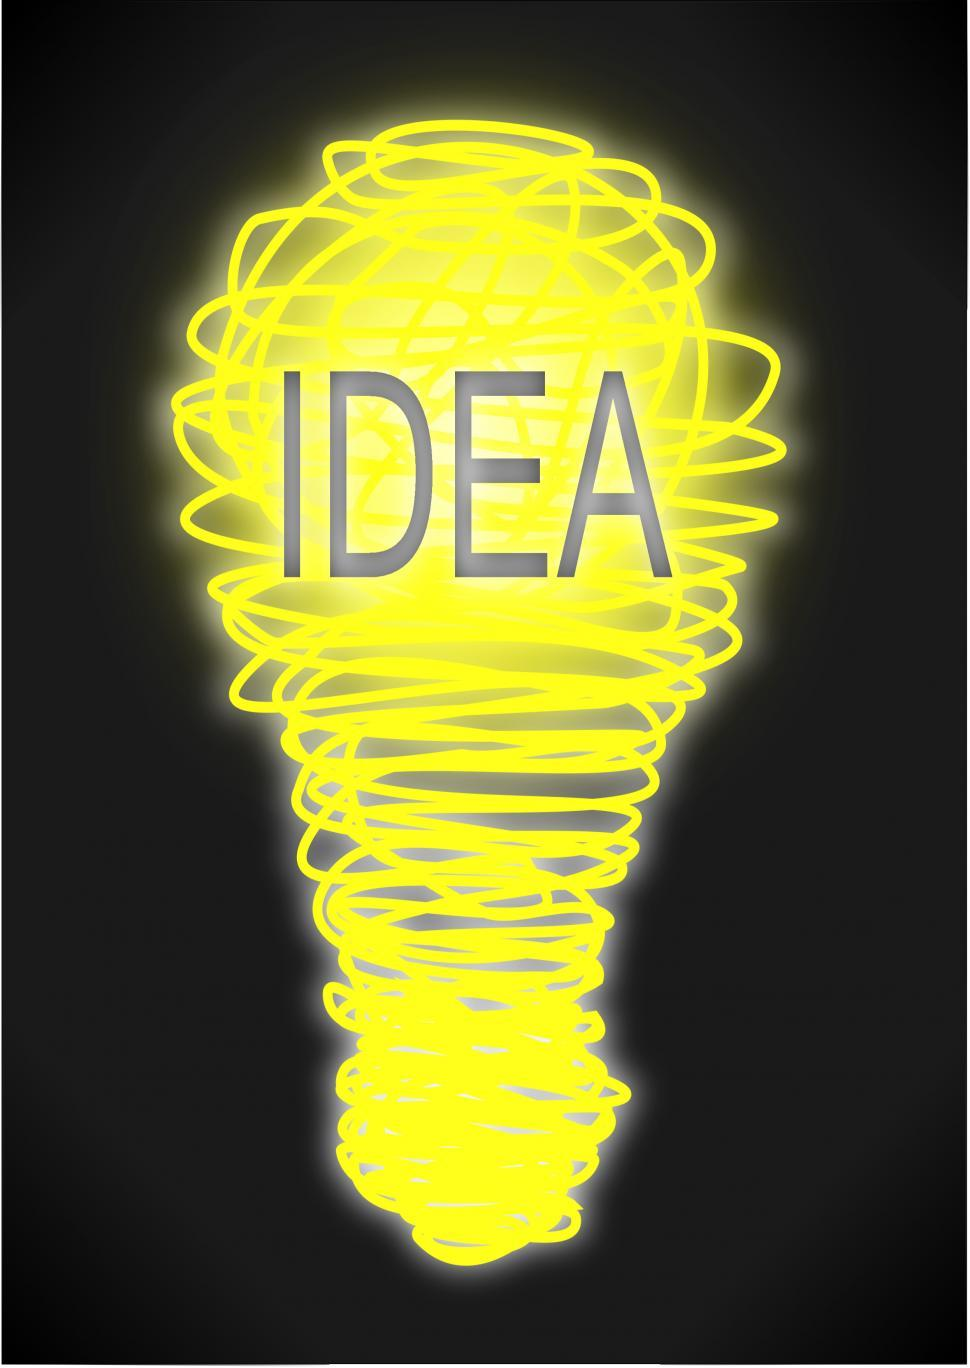 Download Free Stock HD Photo of Lightbulb - Idea Concept Online